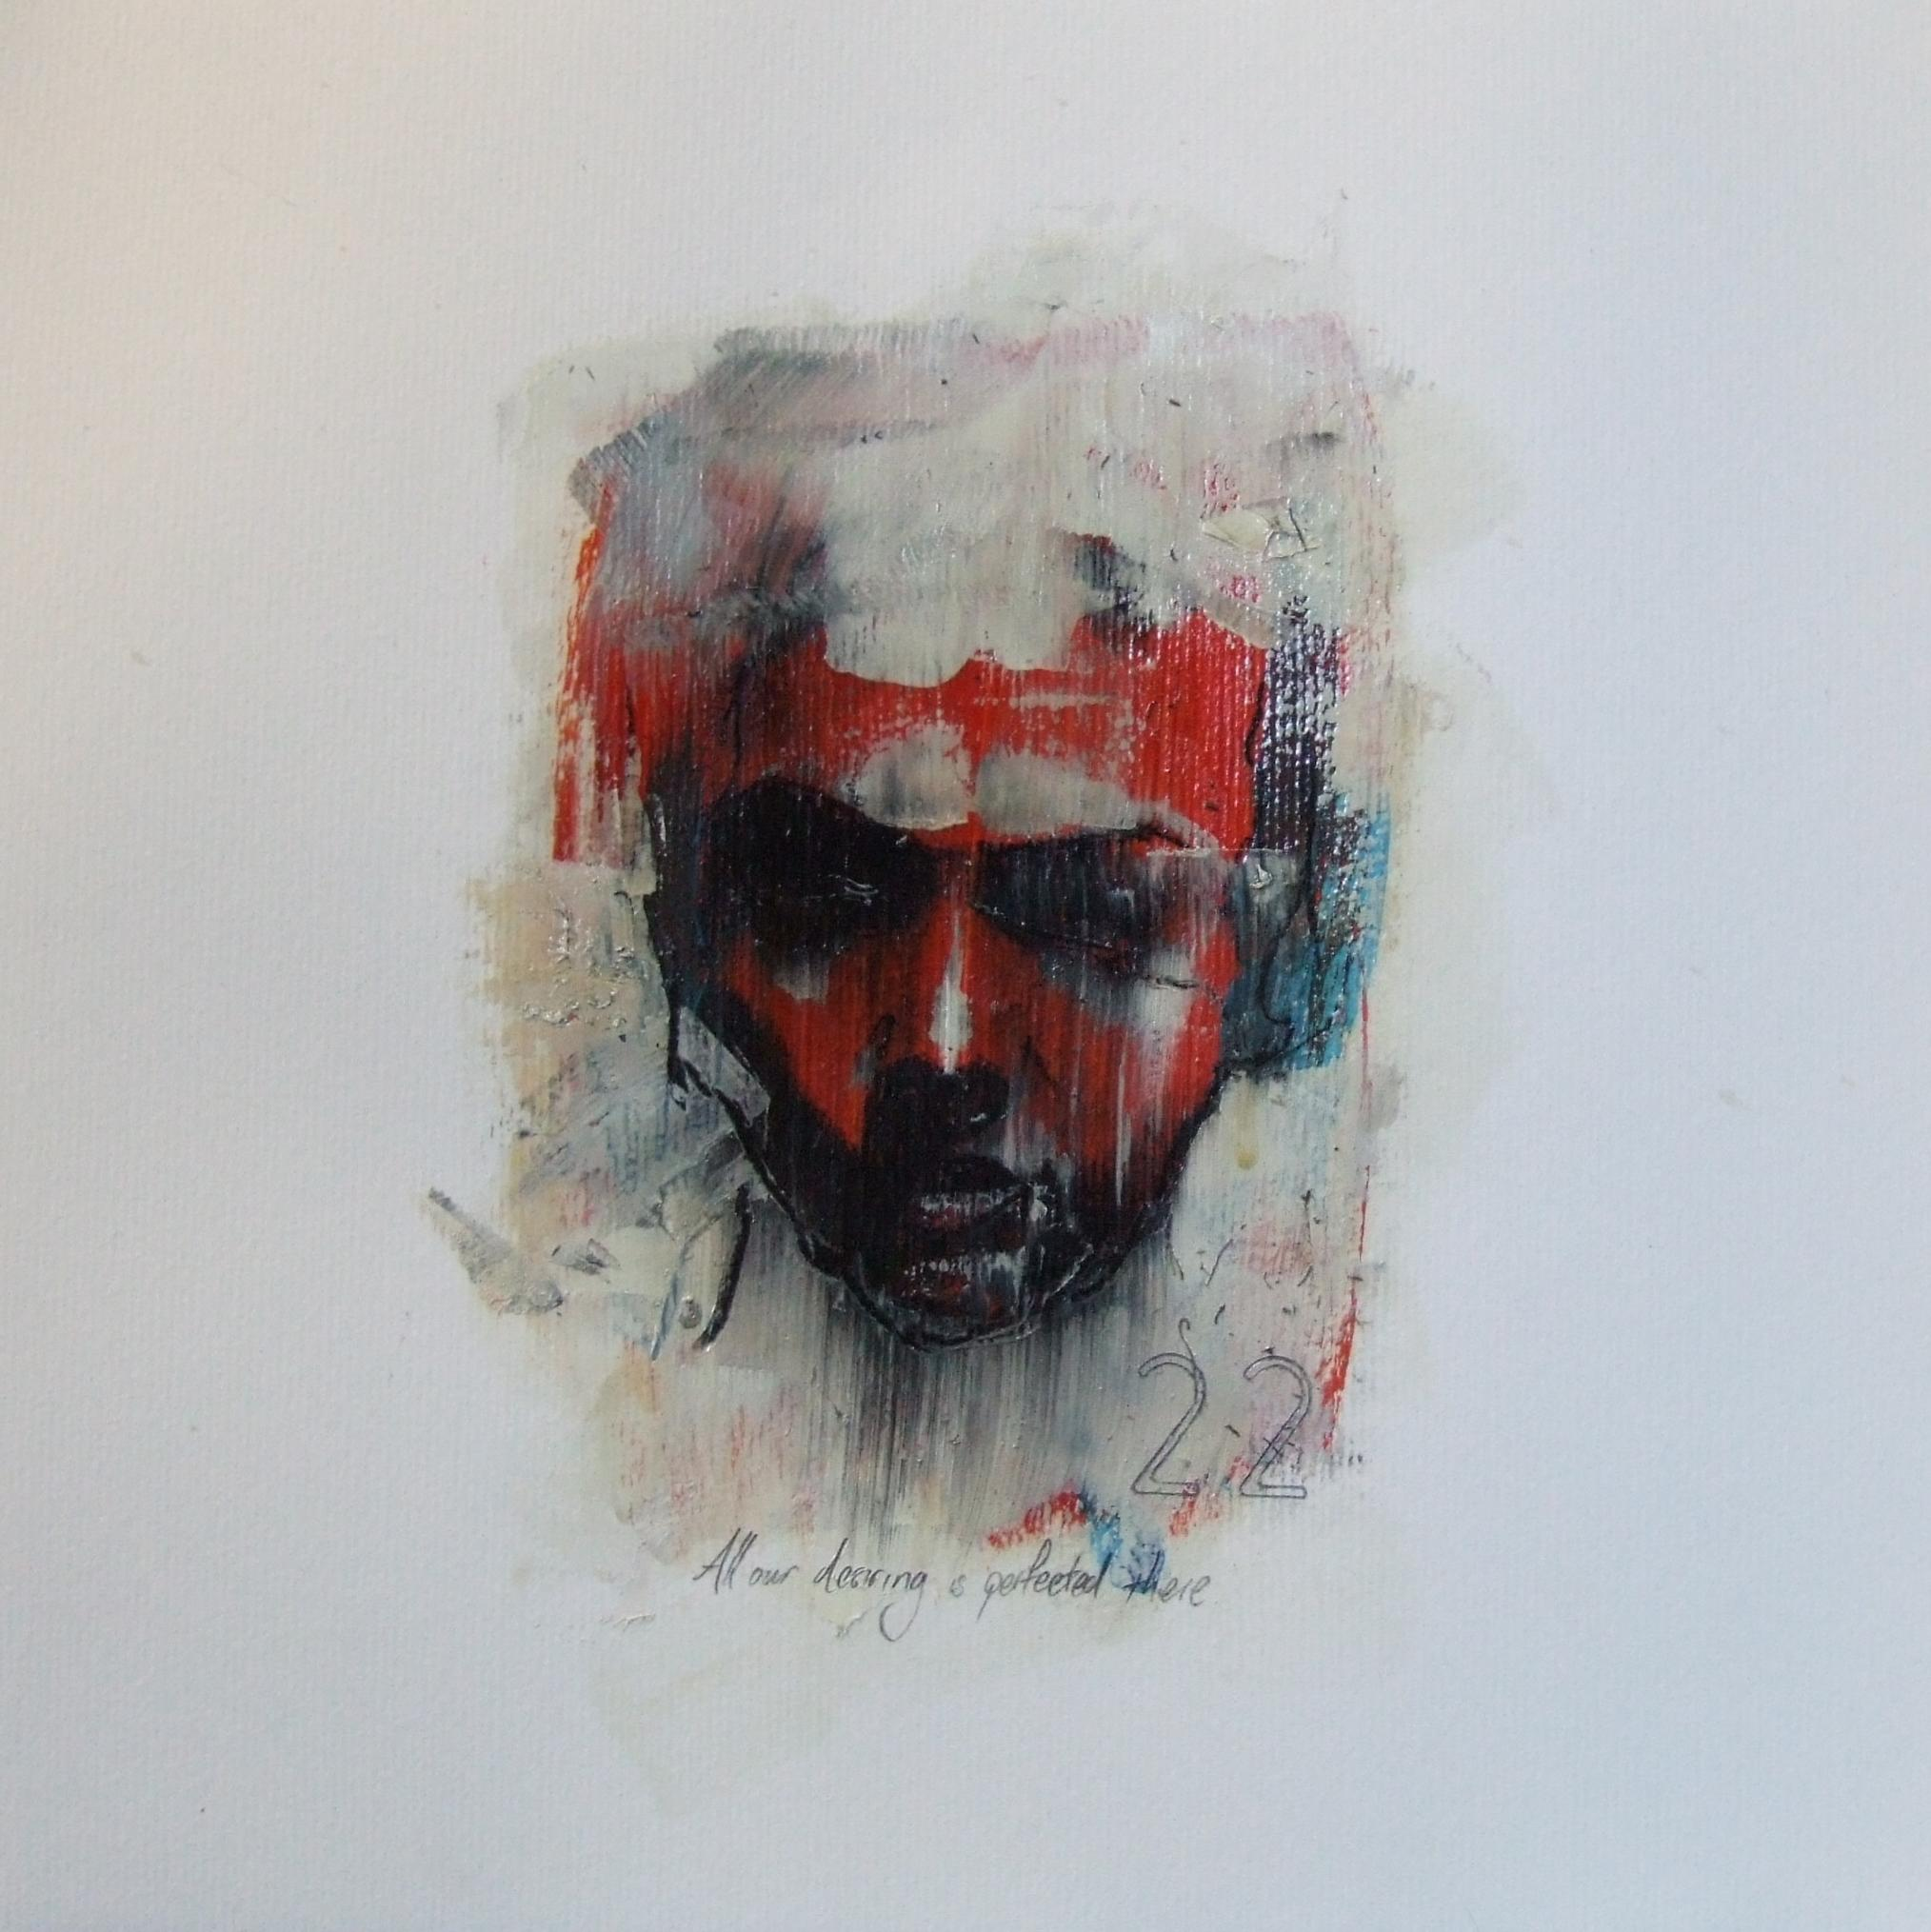 Guy Denning at Signal Gallery | EMPTY KINGDOM You are Here, We are Everywhere